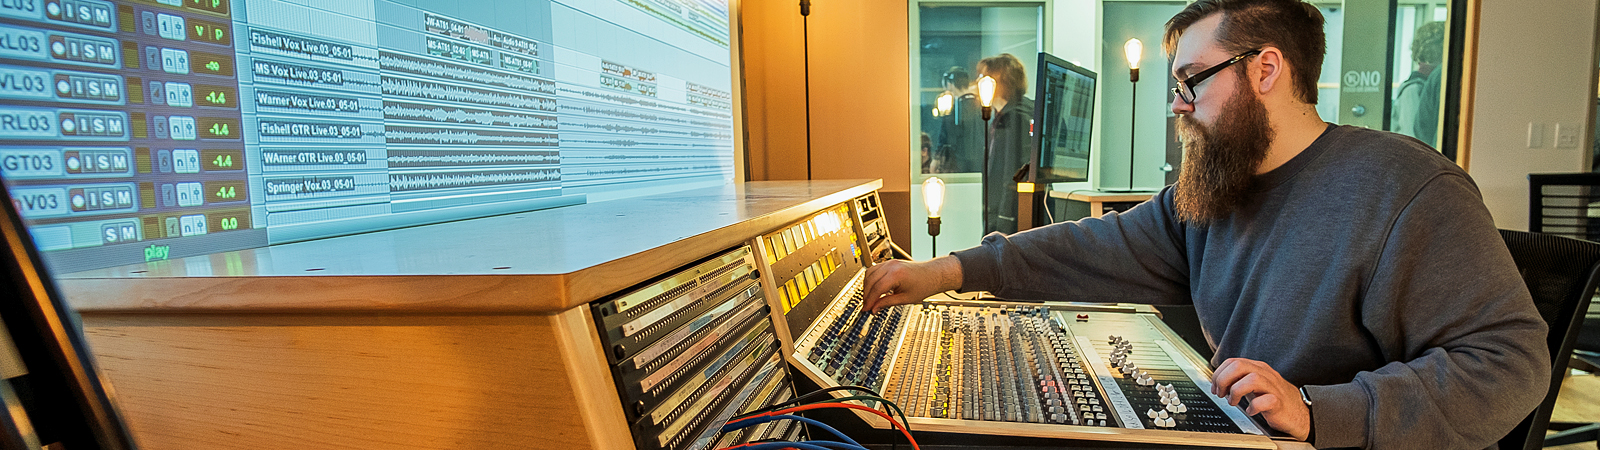 Josiah Hawkins, a senior in the Purdue Fort Wayne Music Technology Program, operates a sound board in Control Room of the Purdue Fort Wayne Sweetwater Music Center. <span class=&apos;image-credits&apos;>By Ray Steup</span>